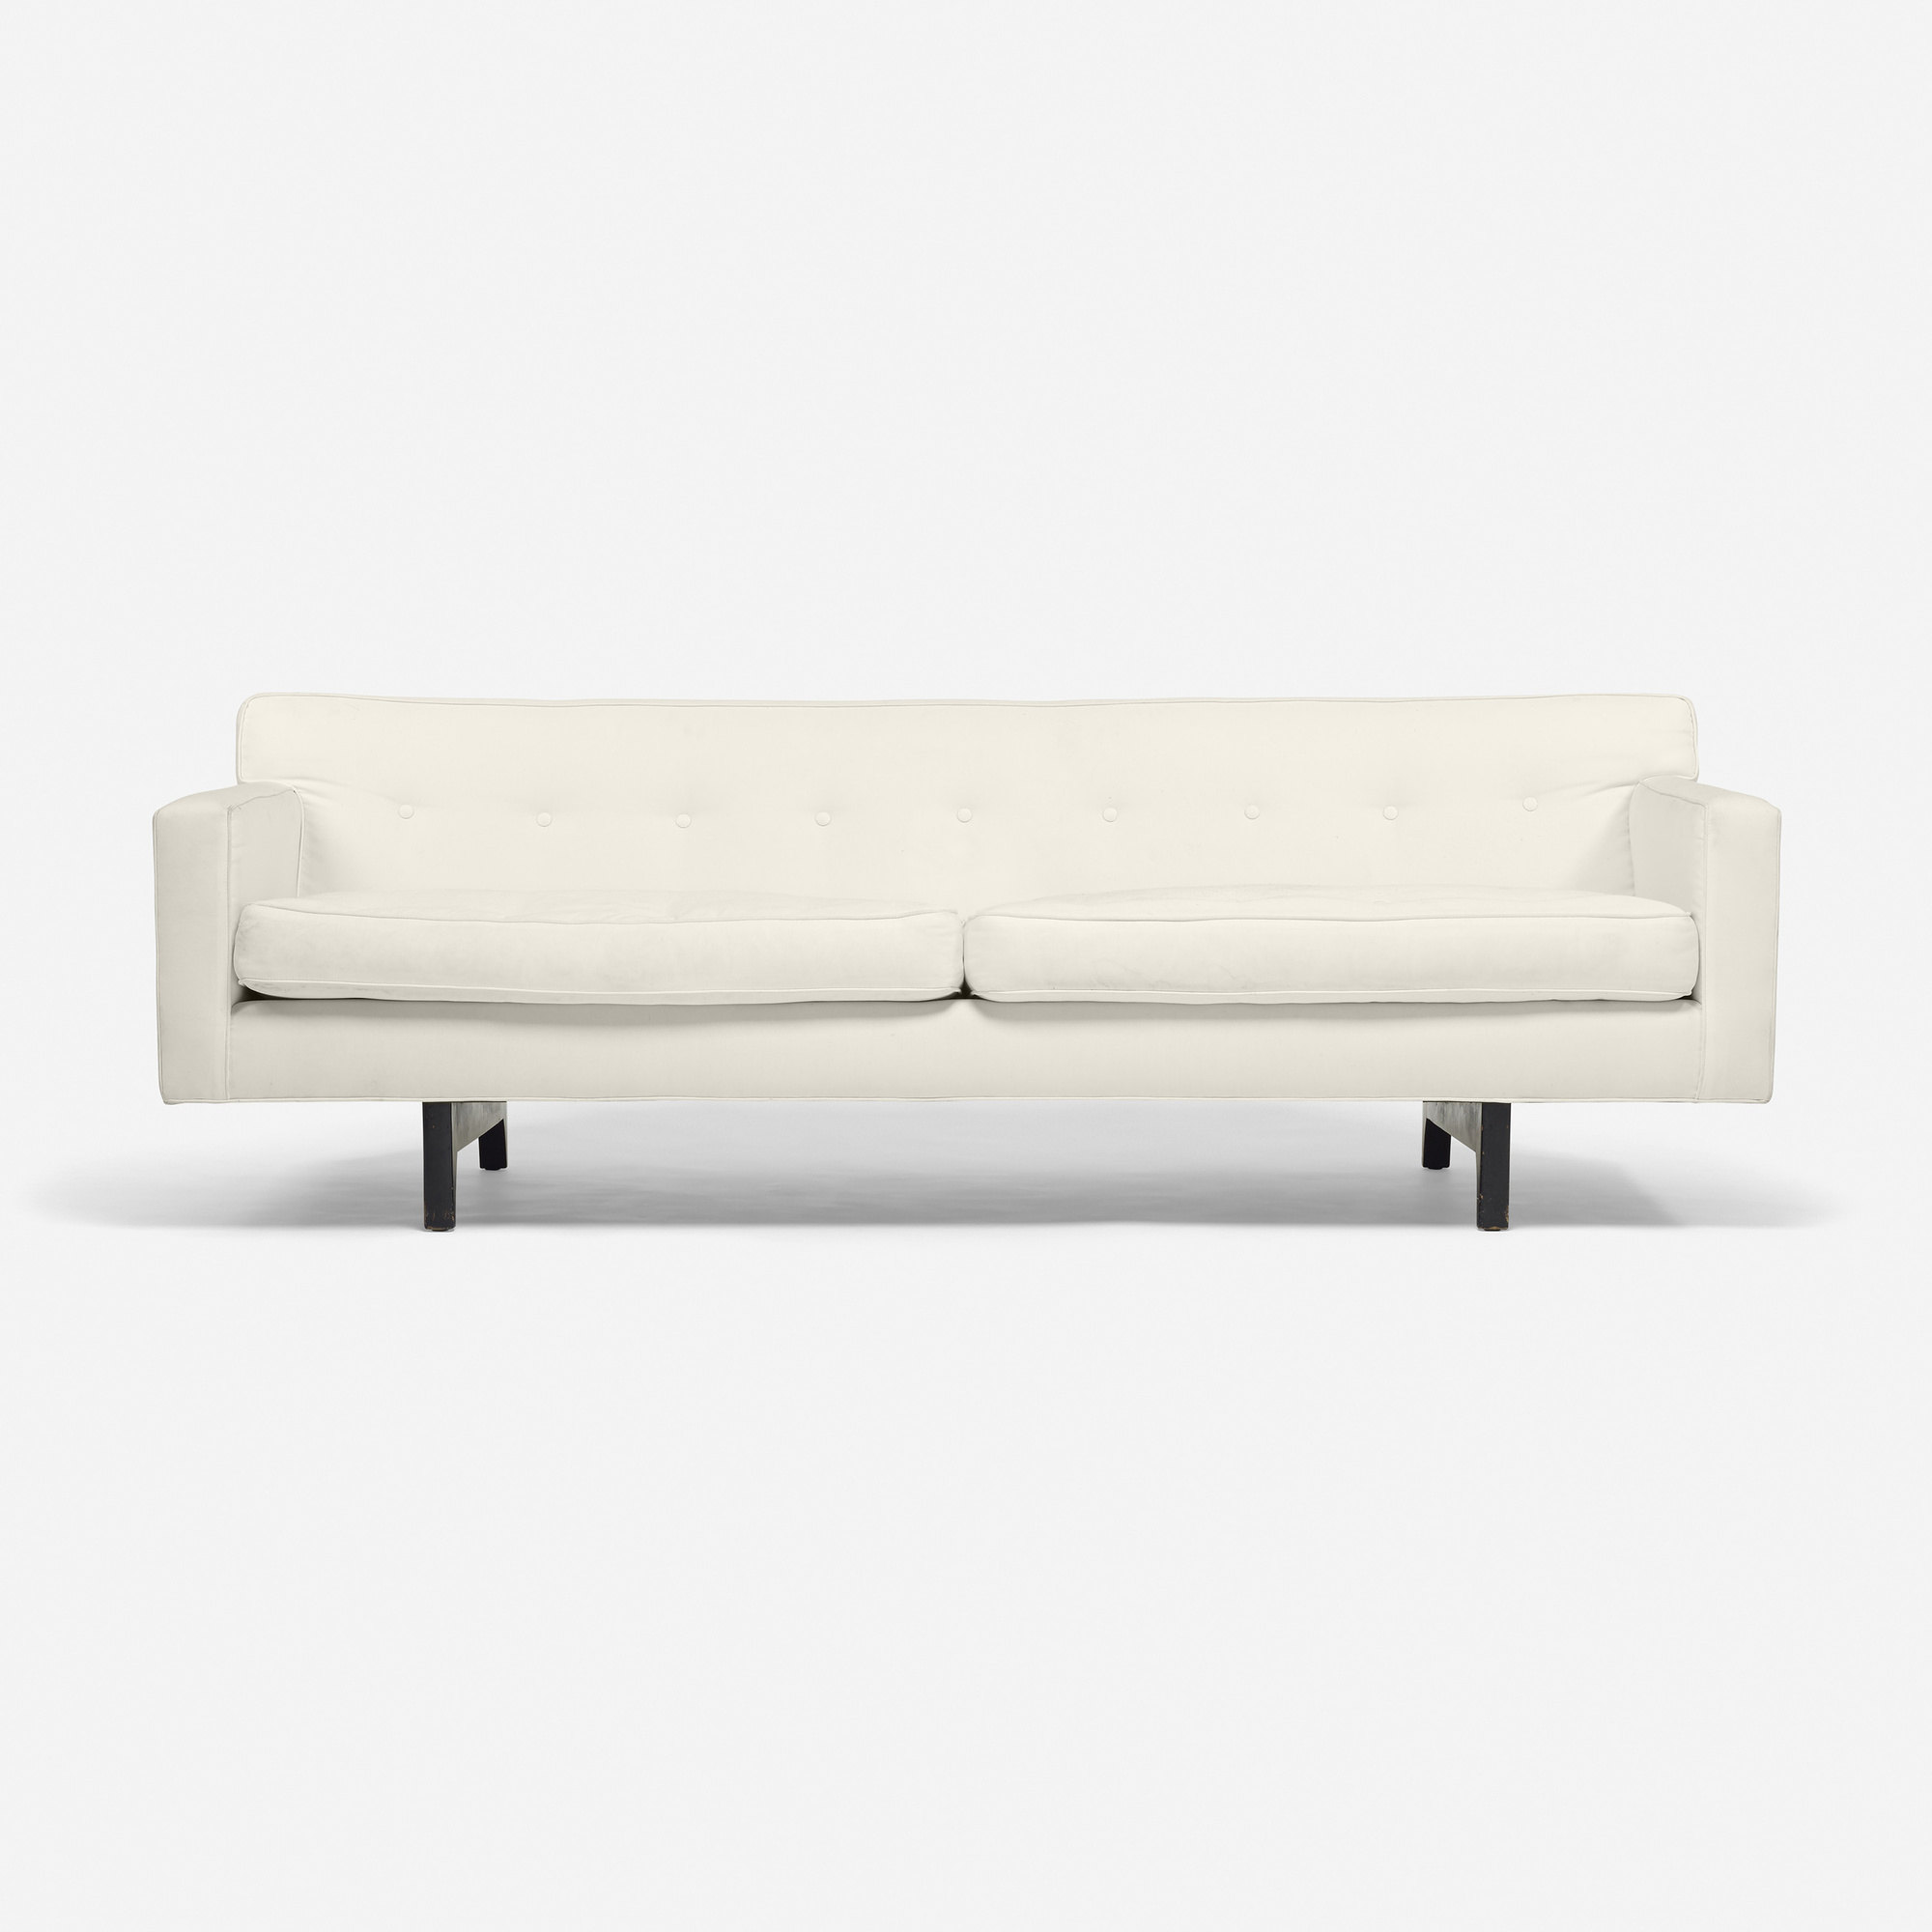 ... 374: Edward Wormley / Sofa, Model 5125 (2 Of 4)